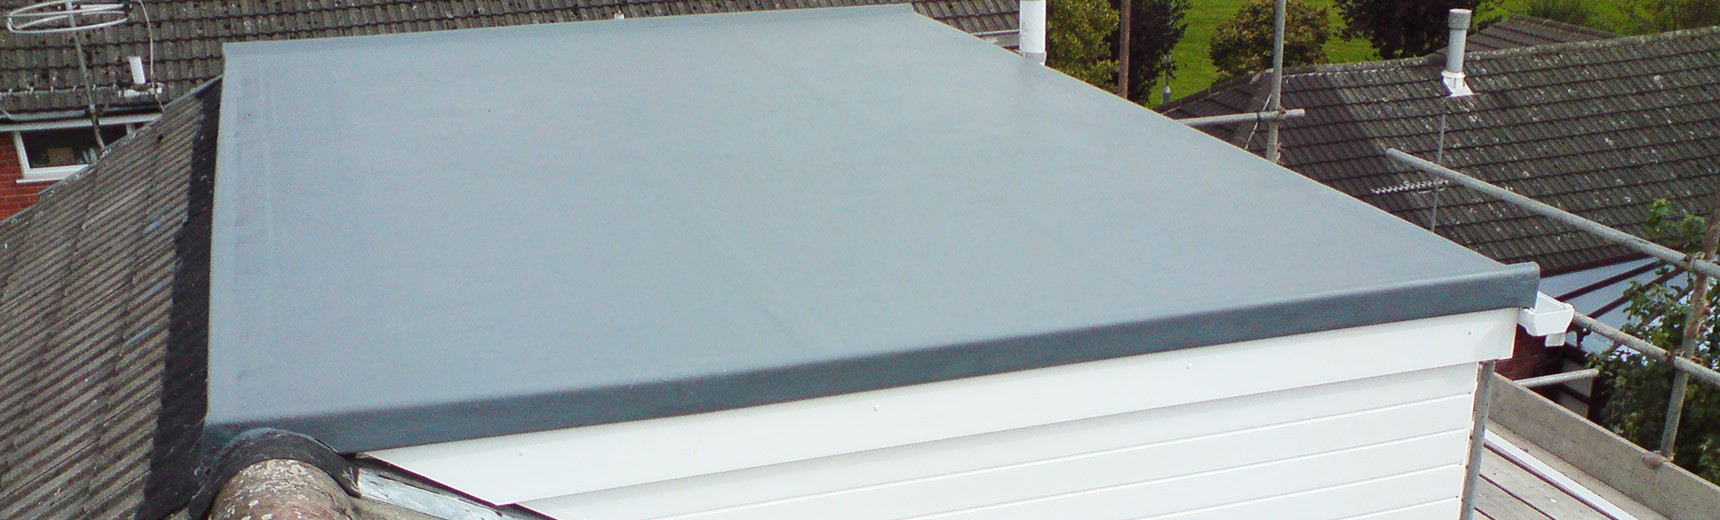 Flat Roofing Leicester Flat Roof Repairs Your Local